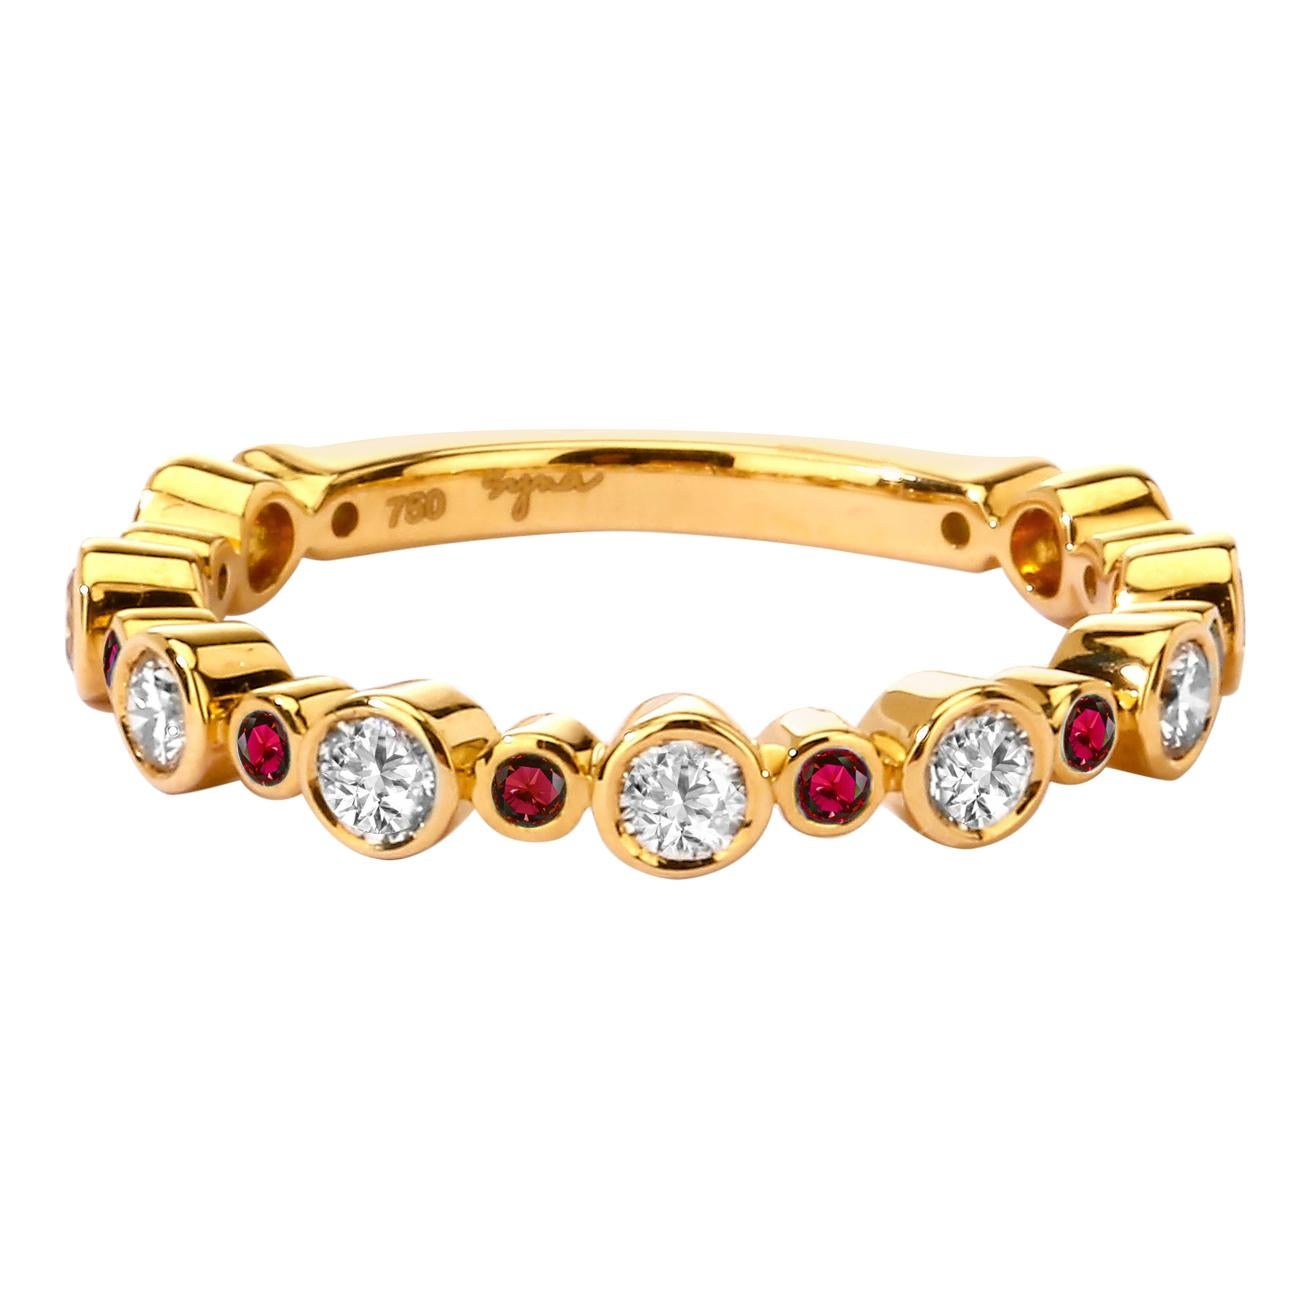 Syna Yellow Gold Band with Rubies and Champagne Diamonds